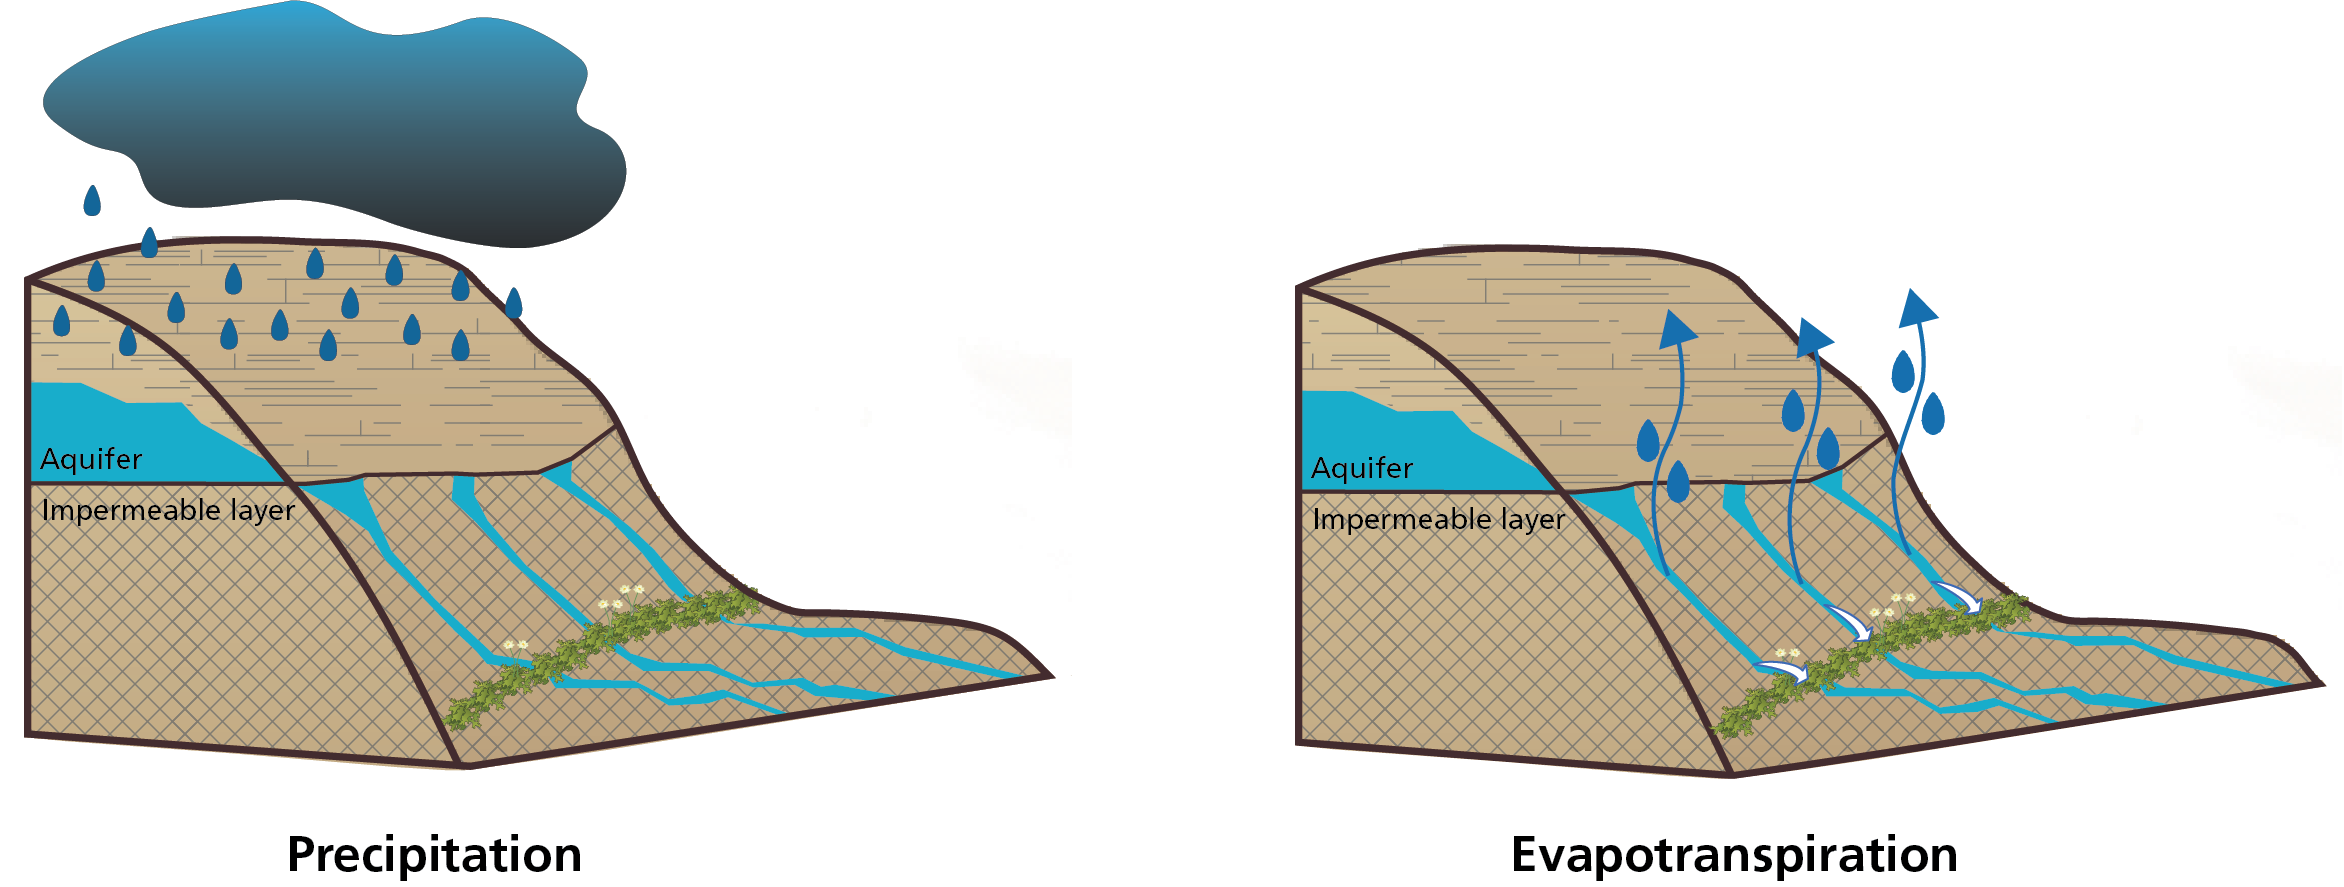 Conceptual diagrams showing precipitation and potential evapotranspiration processes at springs.